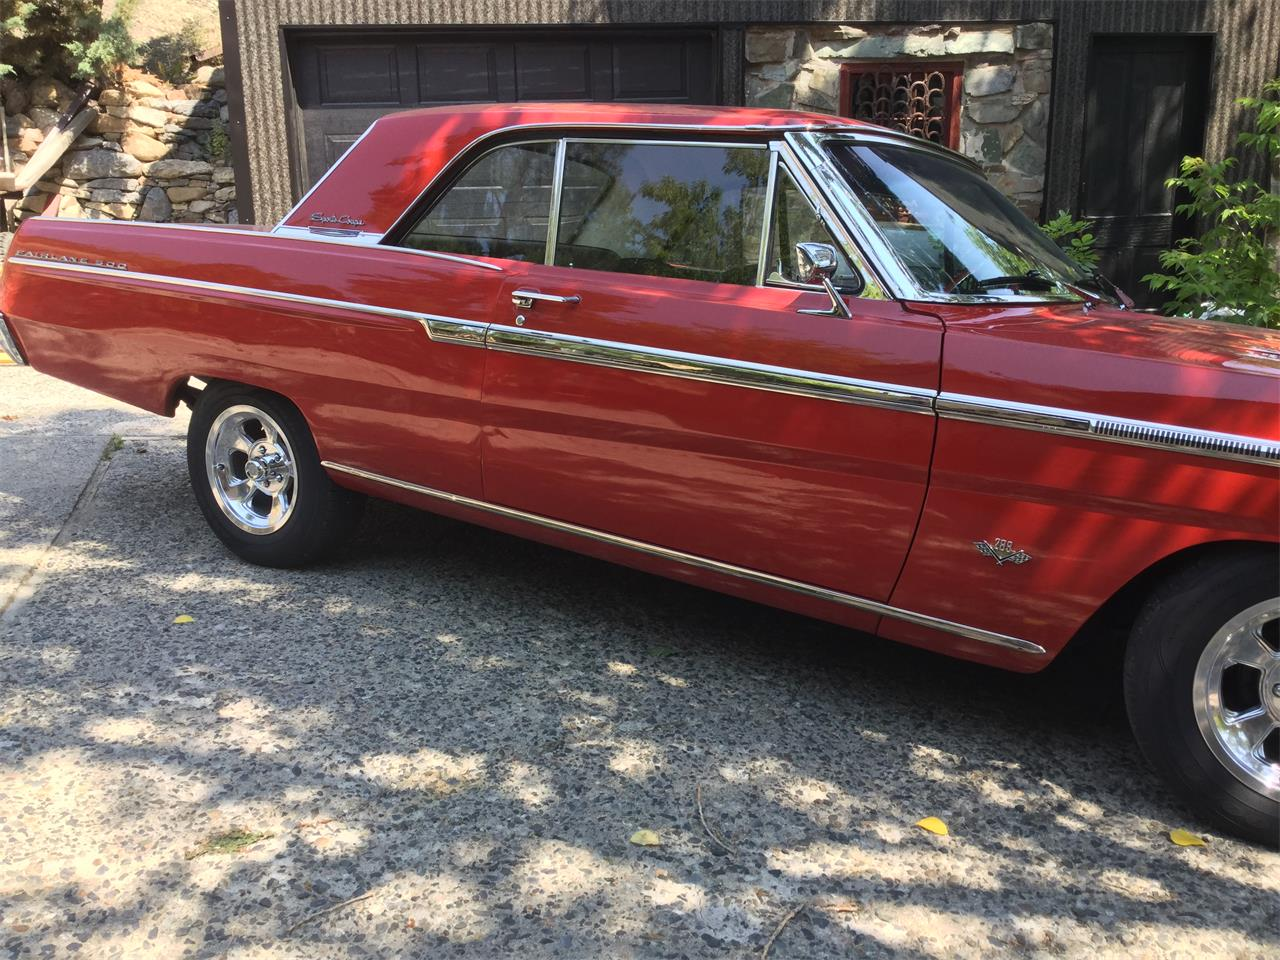 Large Picture of Classic 1965 Ford Fairlane 500 located in Montana - $37,500.00 Offered by a Private Seller - OWOY